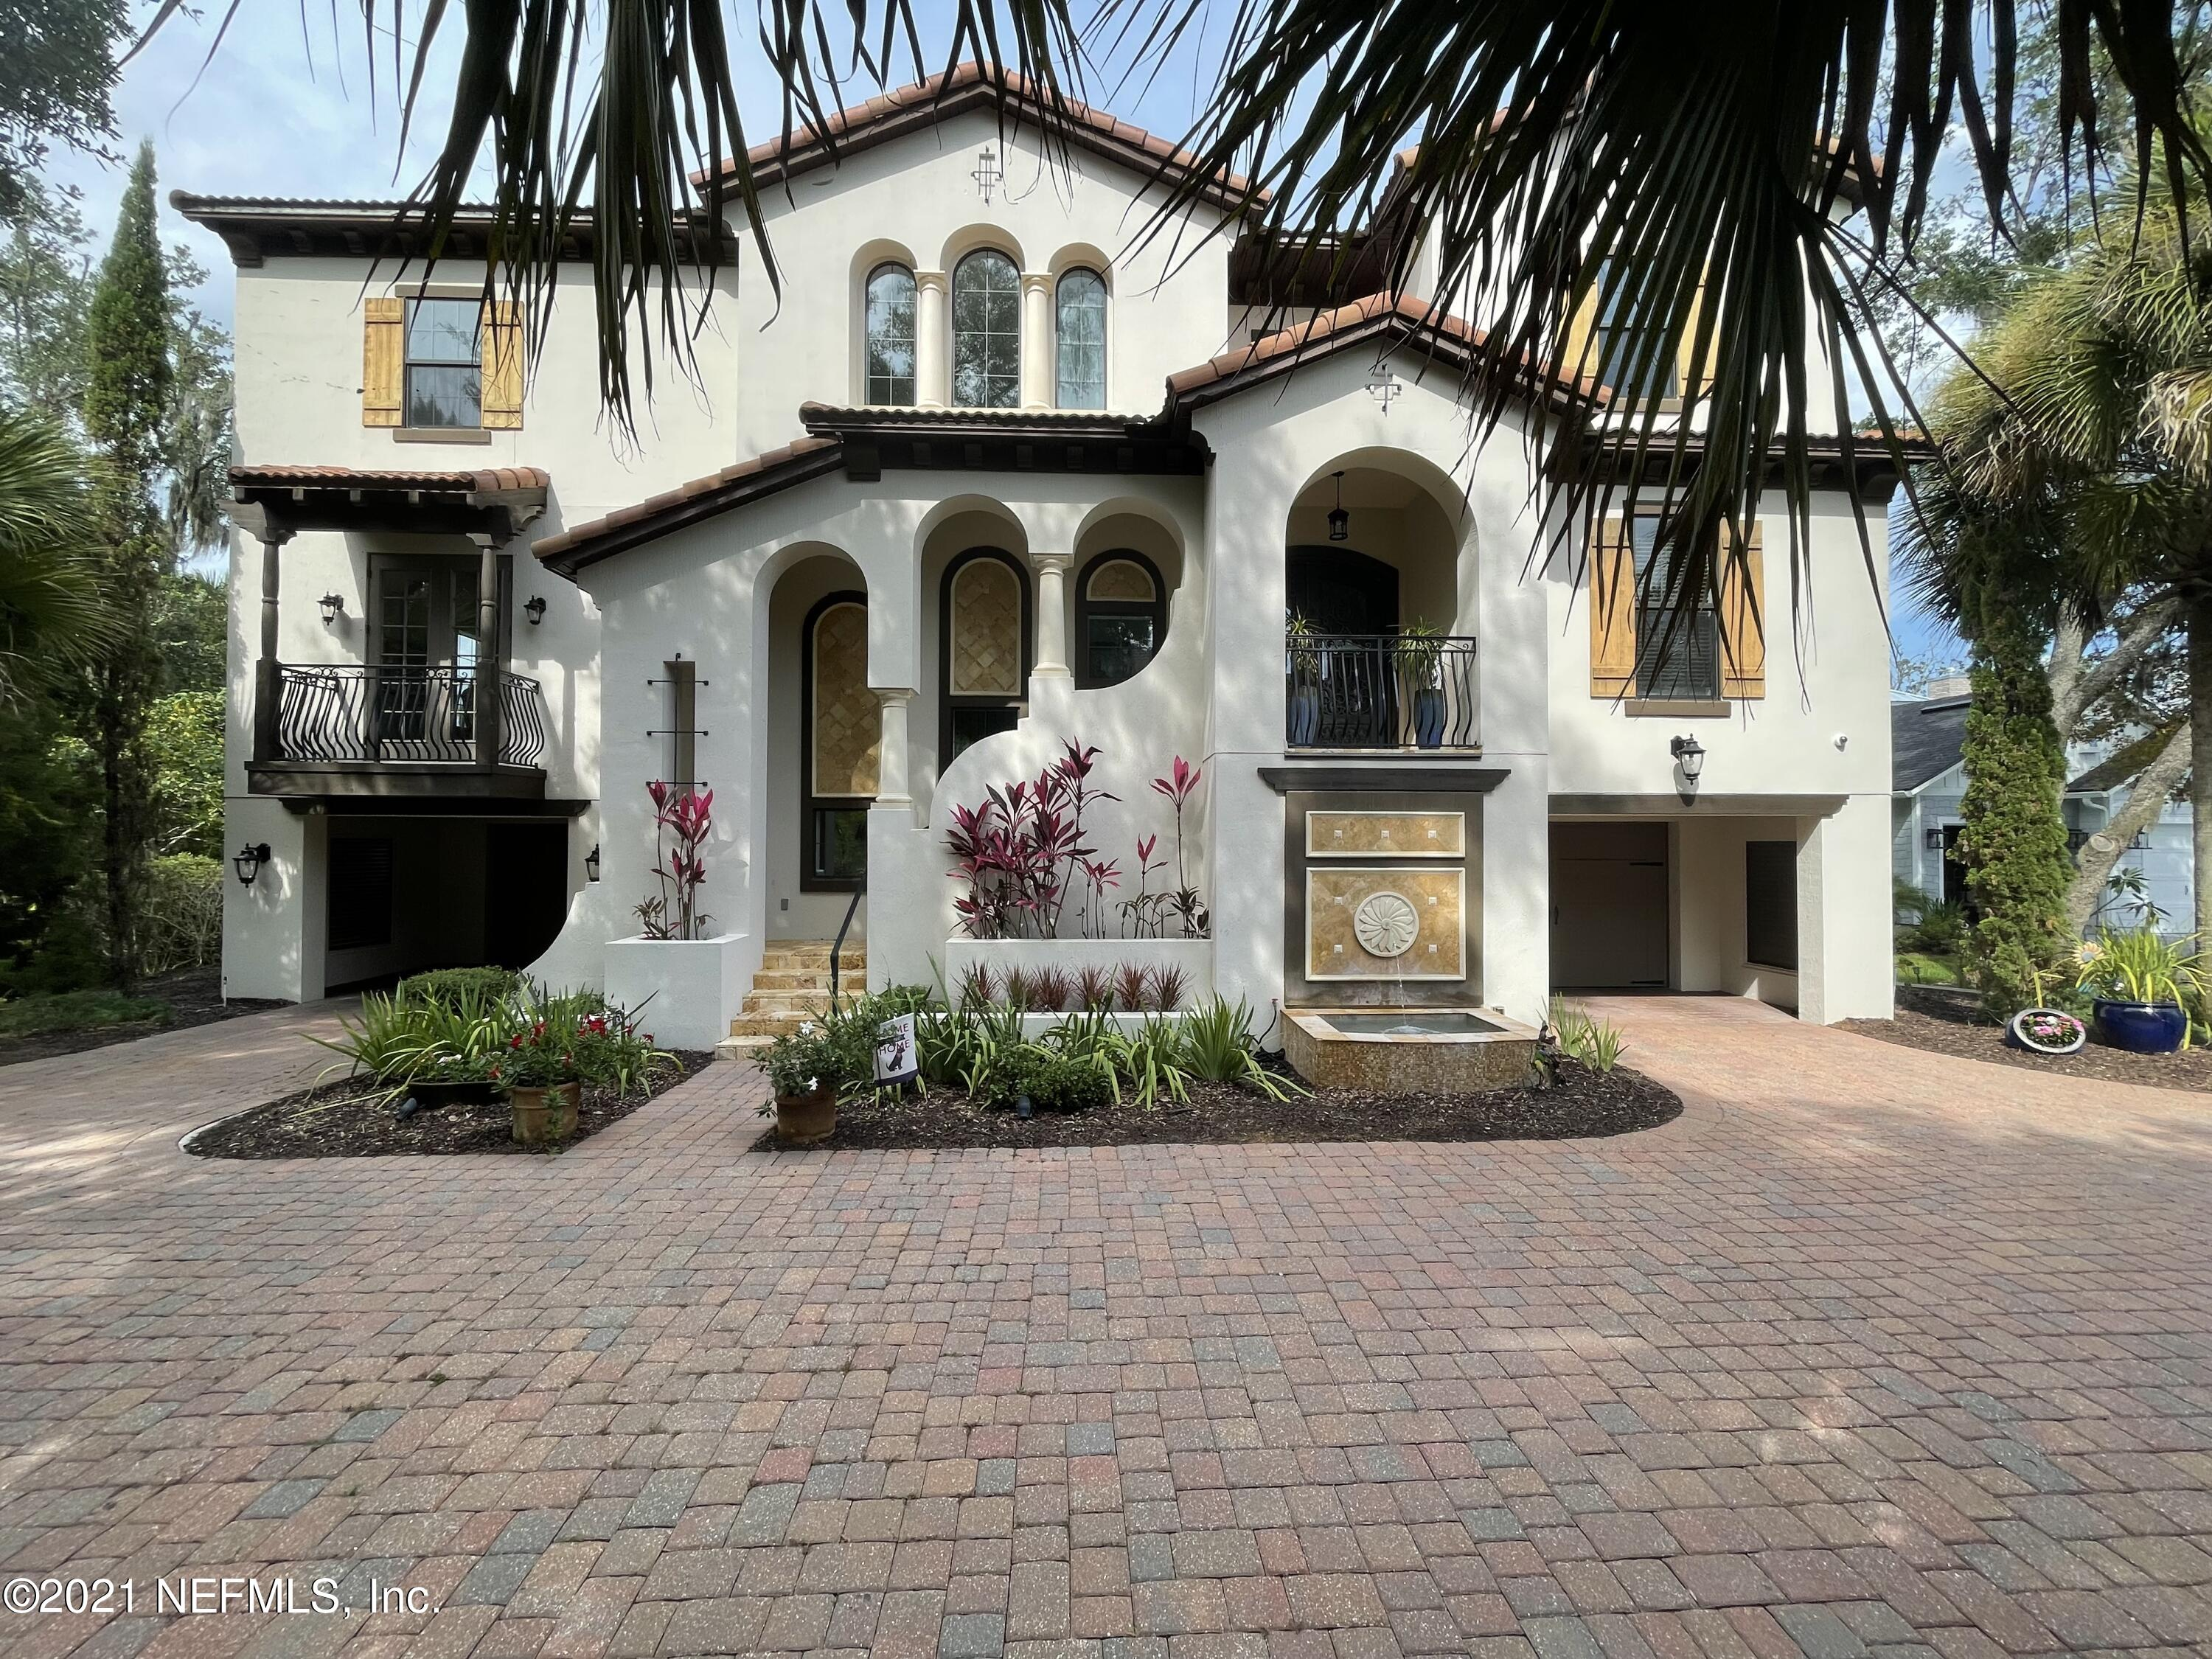 Custom 2007 Arthur Rutenberg home  w/ 100' on ICW.  NEW PICTURES COMING SOON! Stunning home, 3 levels with elevator, high-end finishes.  Hickory floors, Granite/Marble Counters, 1st level is 10-car Garage w/wine cellar/storage.  2nd level offers  Lanai w/Fireplace & Summer Kitchen, resort style Salt Water Pool & Spa, Great Rm, Kitchen, two Guest Suites, Movie Rm, & Game Room w/Wet Bar.  3rd level Owner's Suite with Coffee Bar, huge closet with washer/dryer hookup, Balcony w/Fireplace, Workout Room/Office, plus two more Bedrooms w/en-suite Baths.Fabulous Chefs Kitchen has it all: Lg. Monogram Refrigerator & Freezer, 6-burner gas GE Monogram range w/double ovens, built in GE Monogram Wall Oven and Advantium Microwave/Oven, separate Meile built-in Coffee Maker, Kitchen Aide Dishwasher